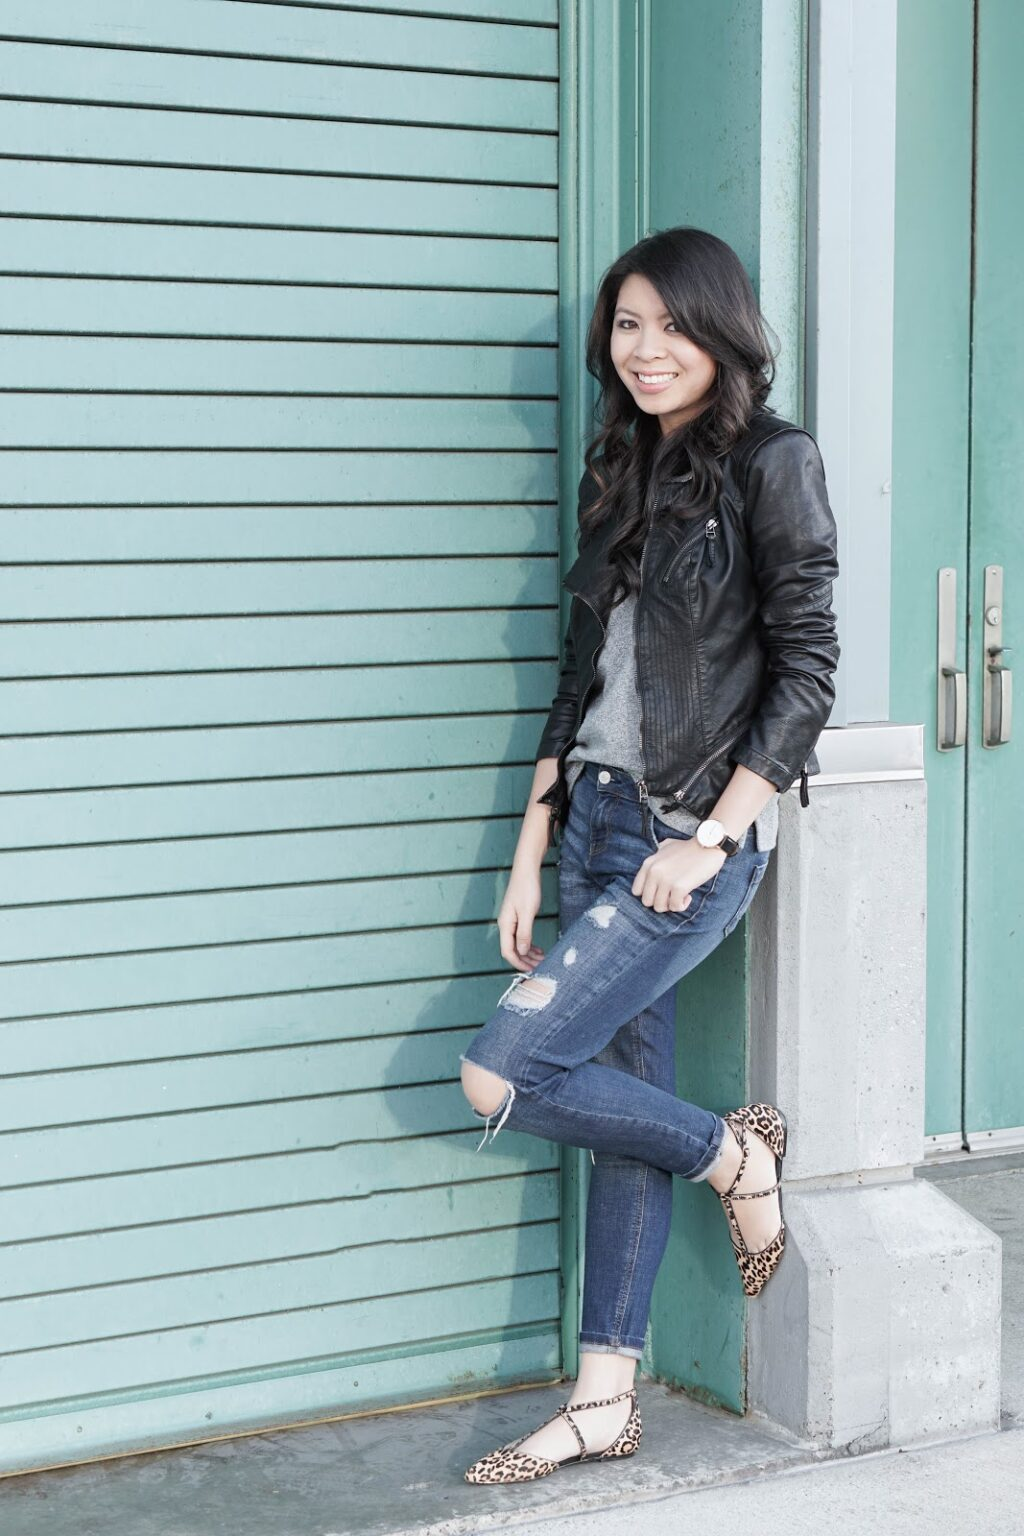 justatinabit-blanknyc-leather-jacket-top-shop-ripped-jeans-sole-society-leopard-flats-tshirt-casual-everyday-look-outfit